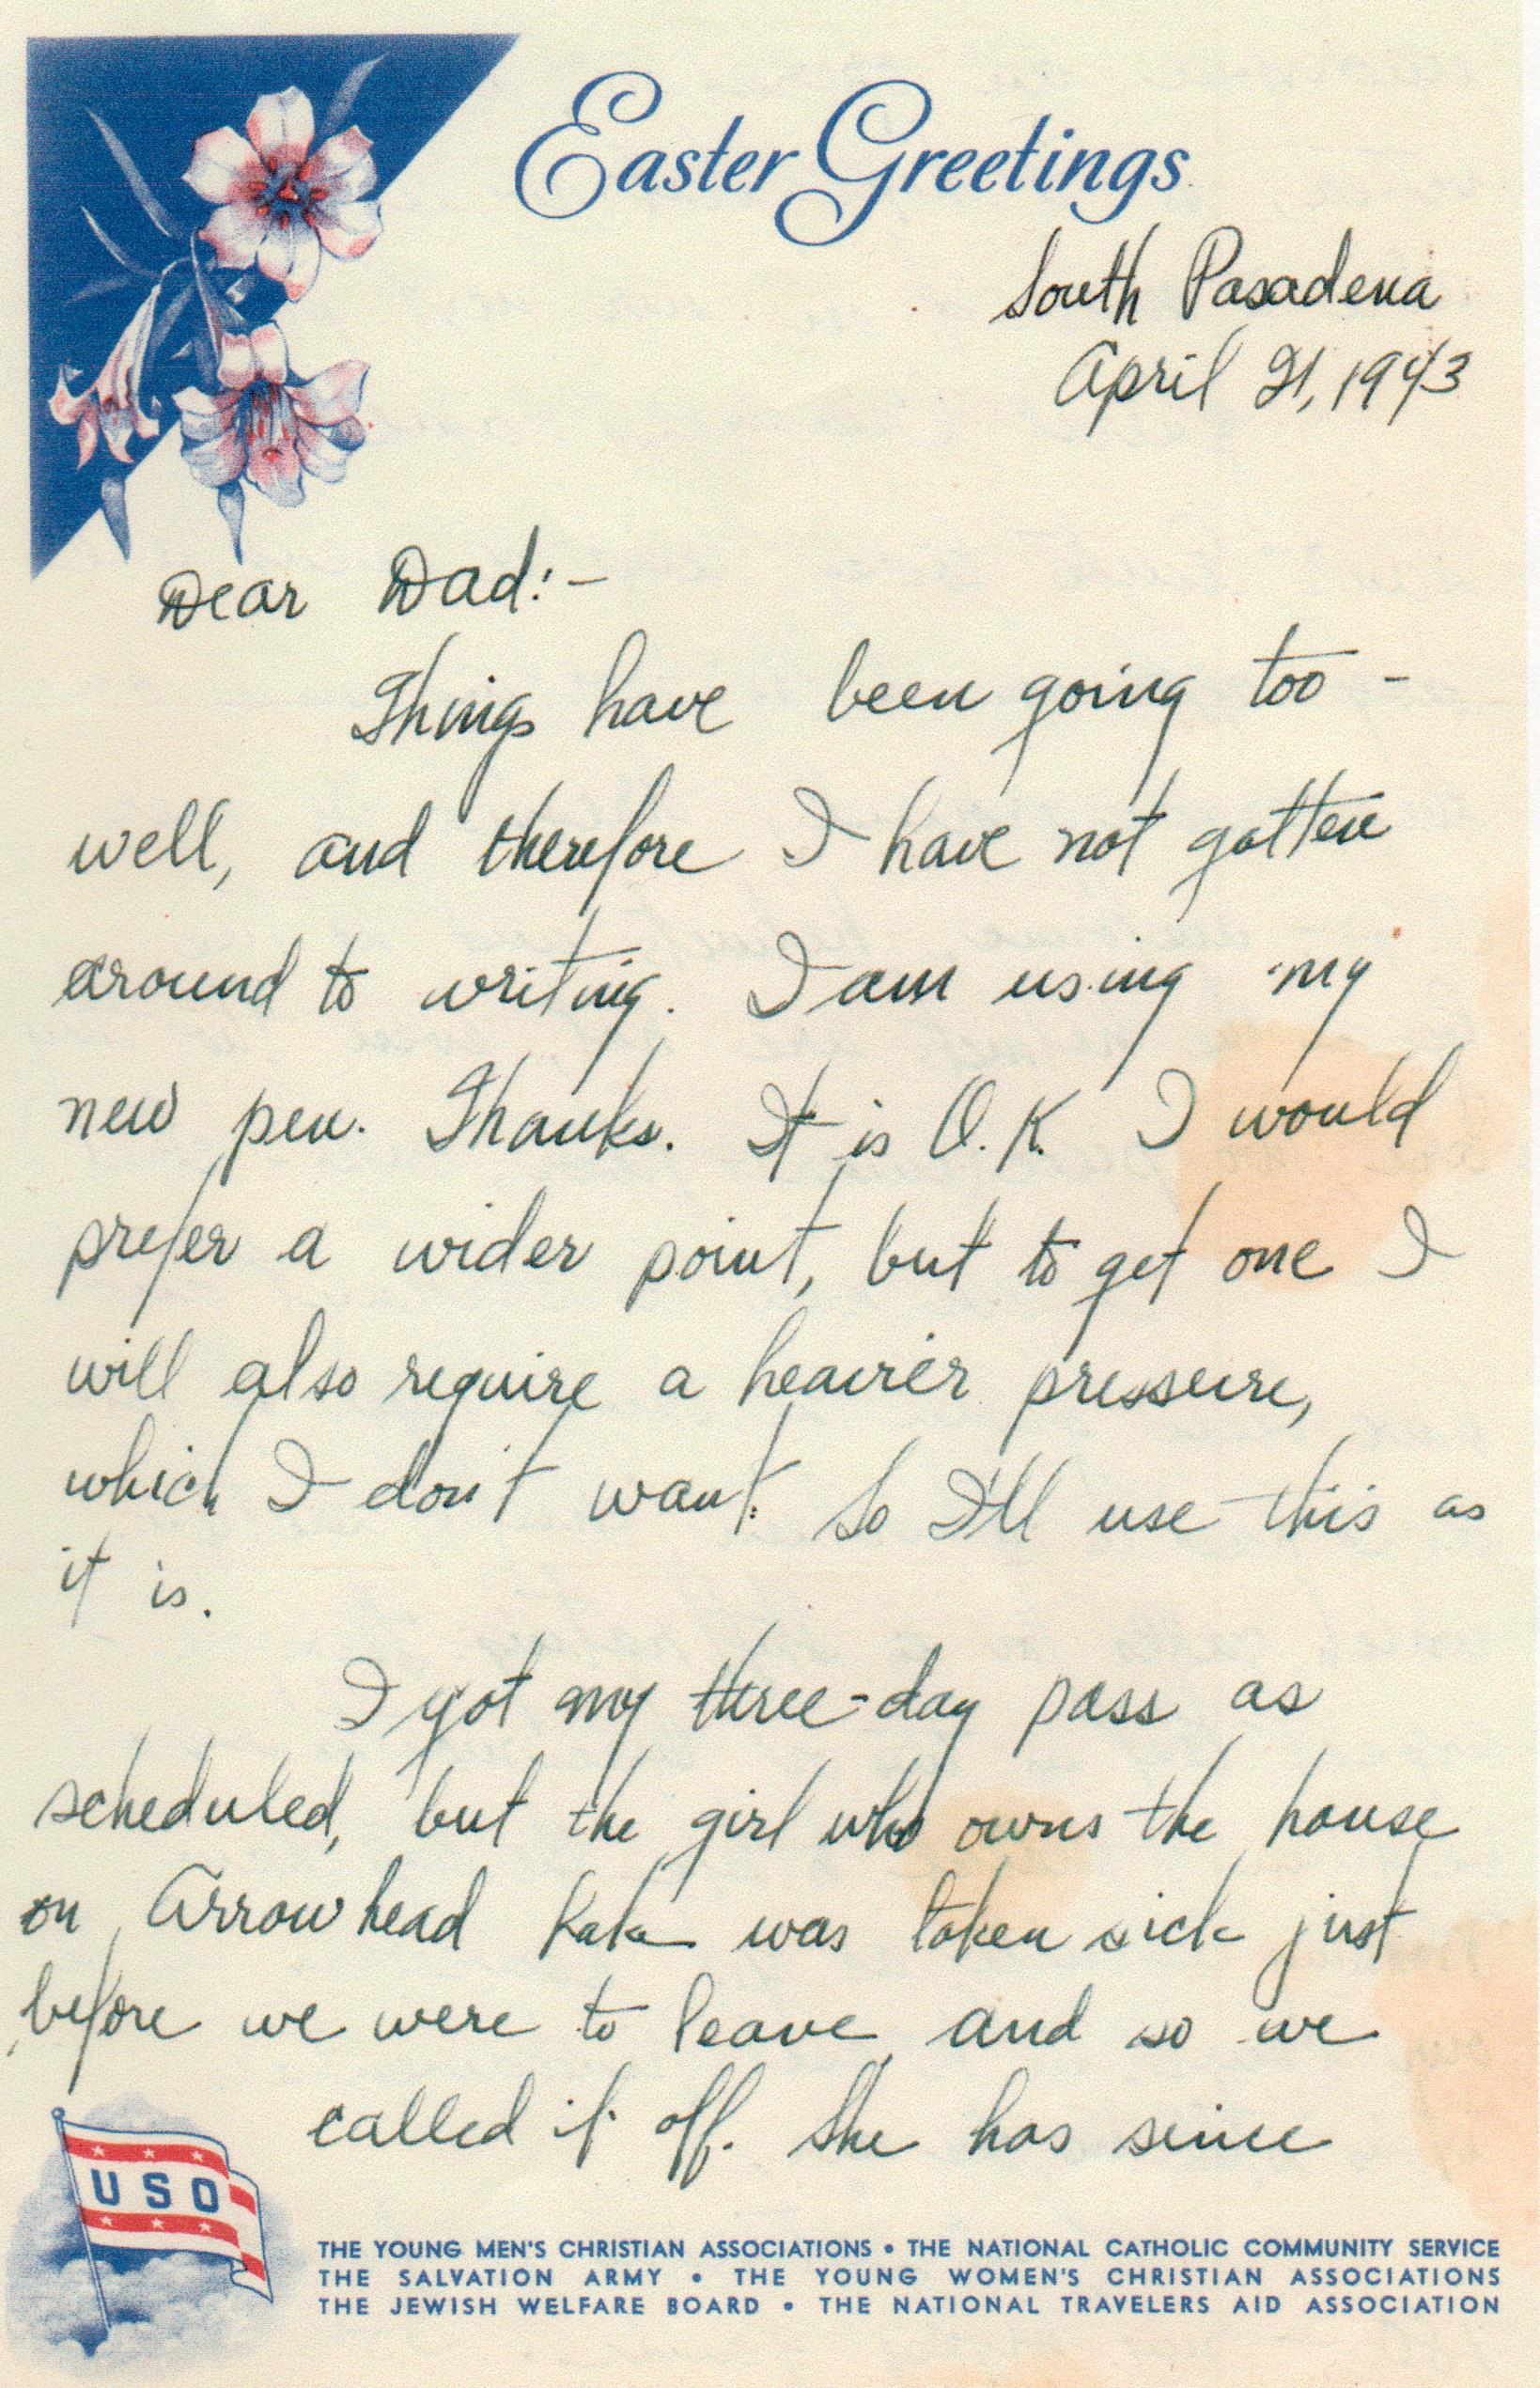 Army Life Easter Greetings From South Pasadena April 1943